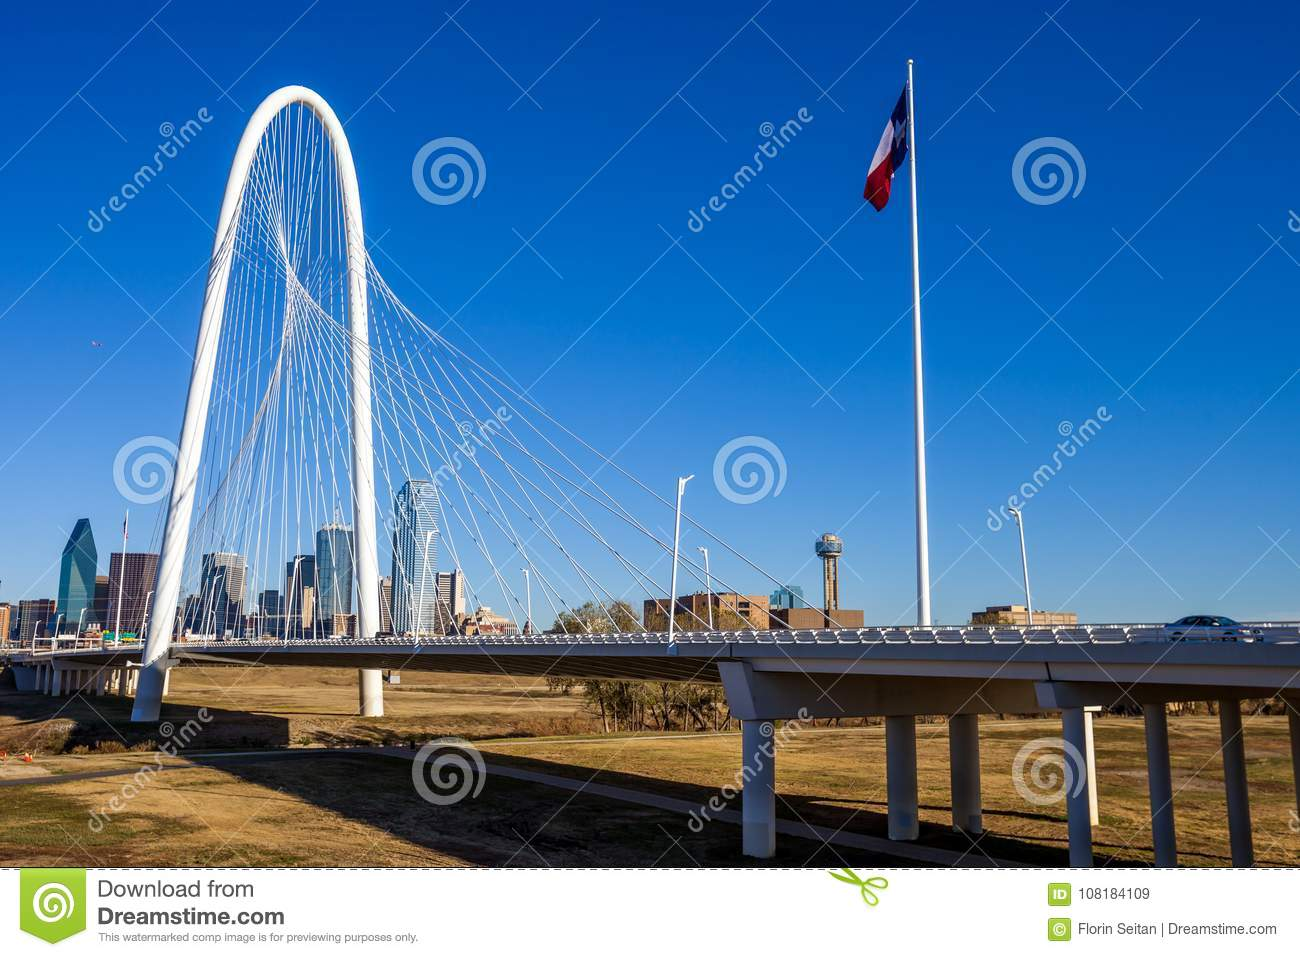 Margaret Hunt Hill Bridge with the Texas flag and Dallas skyline in the background